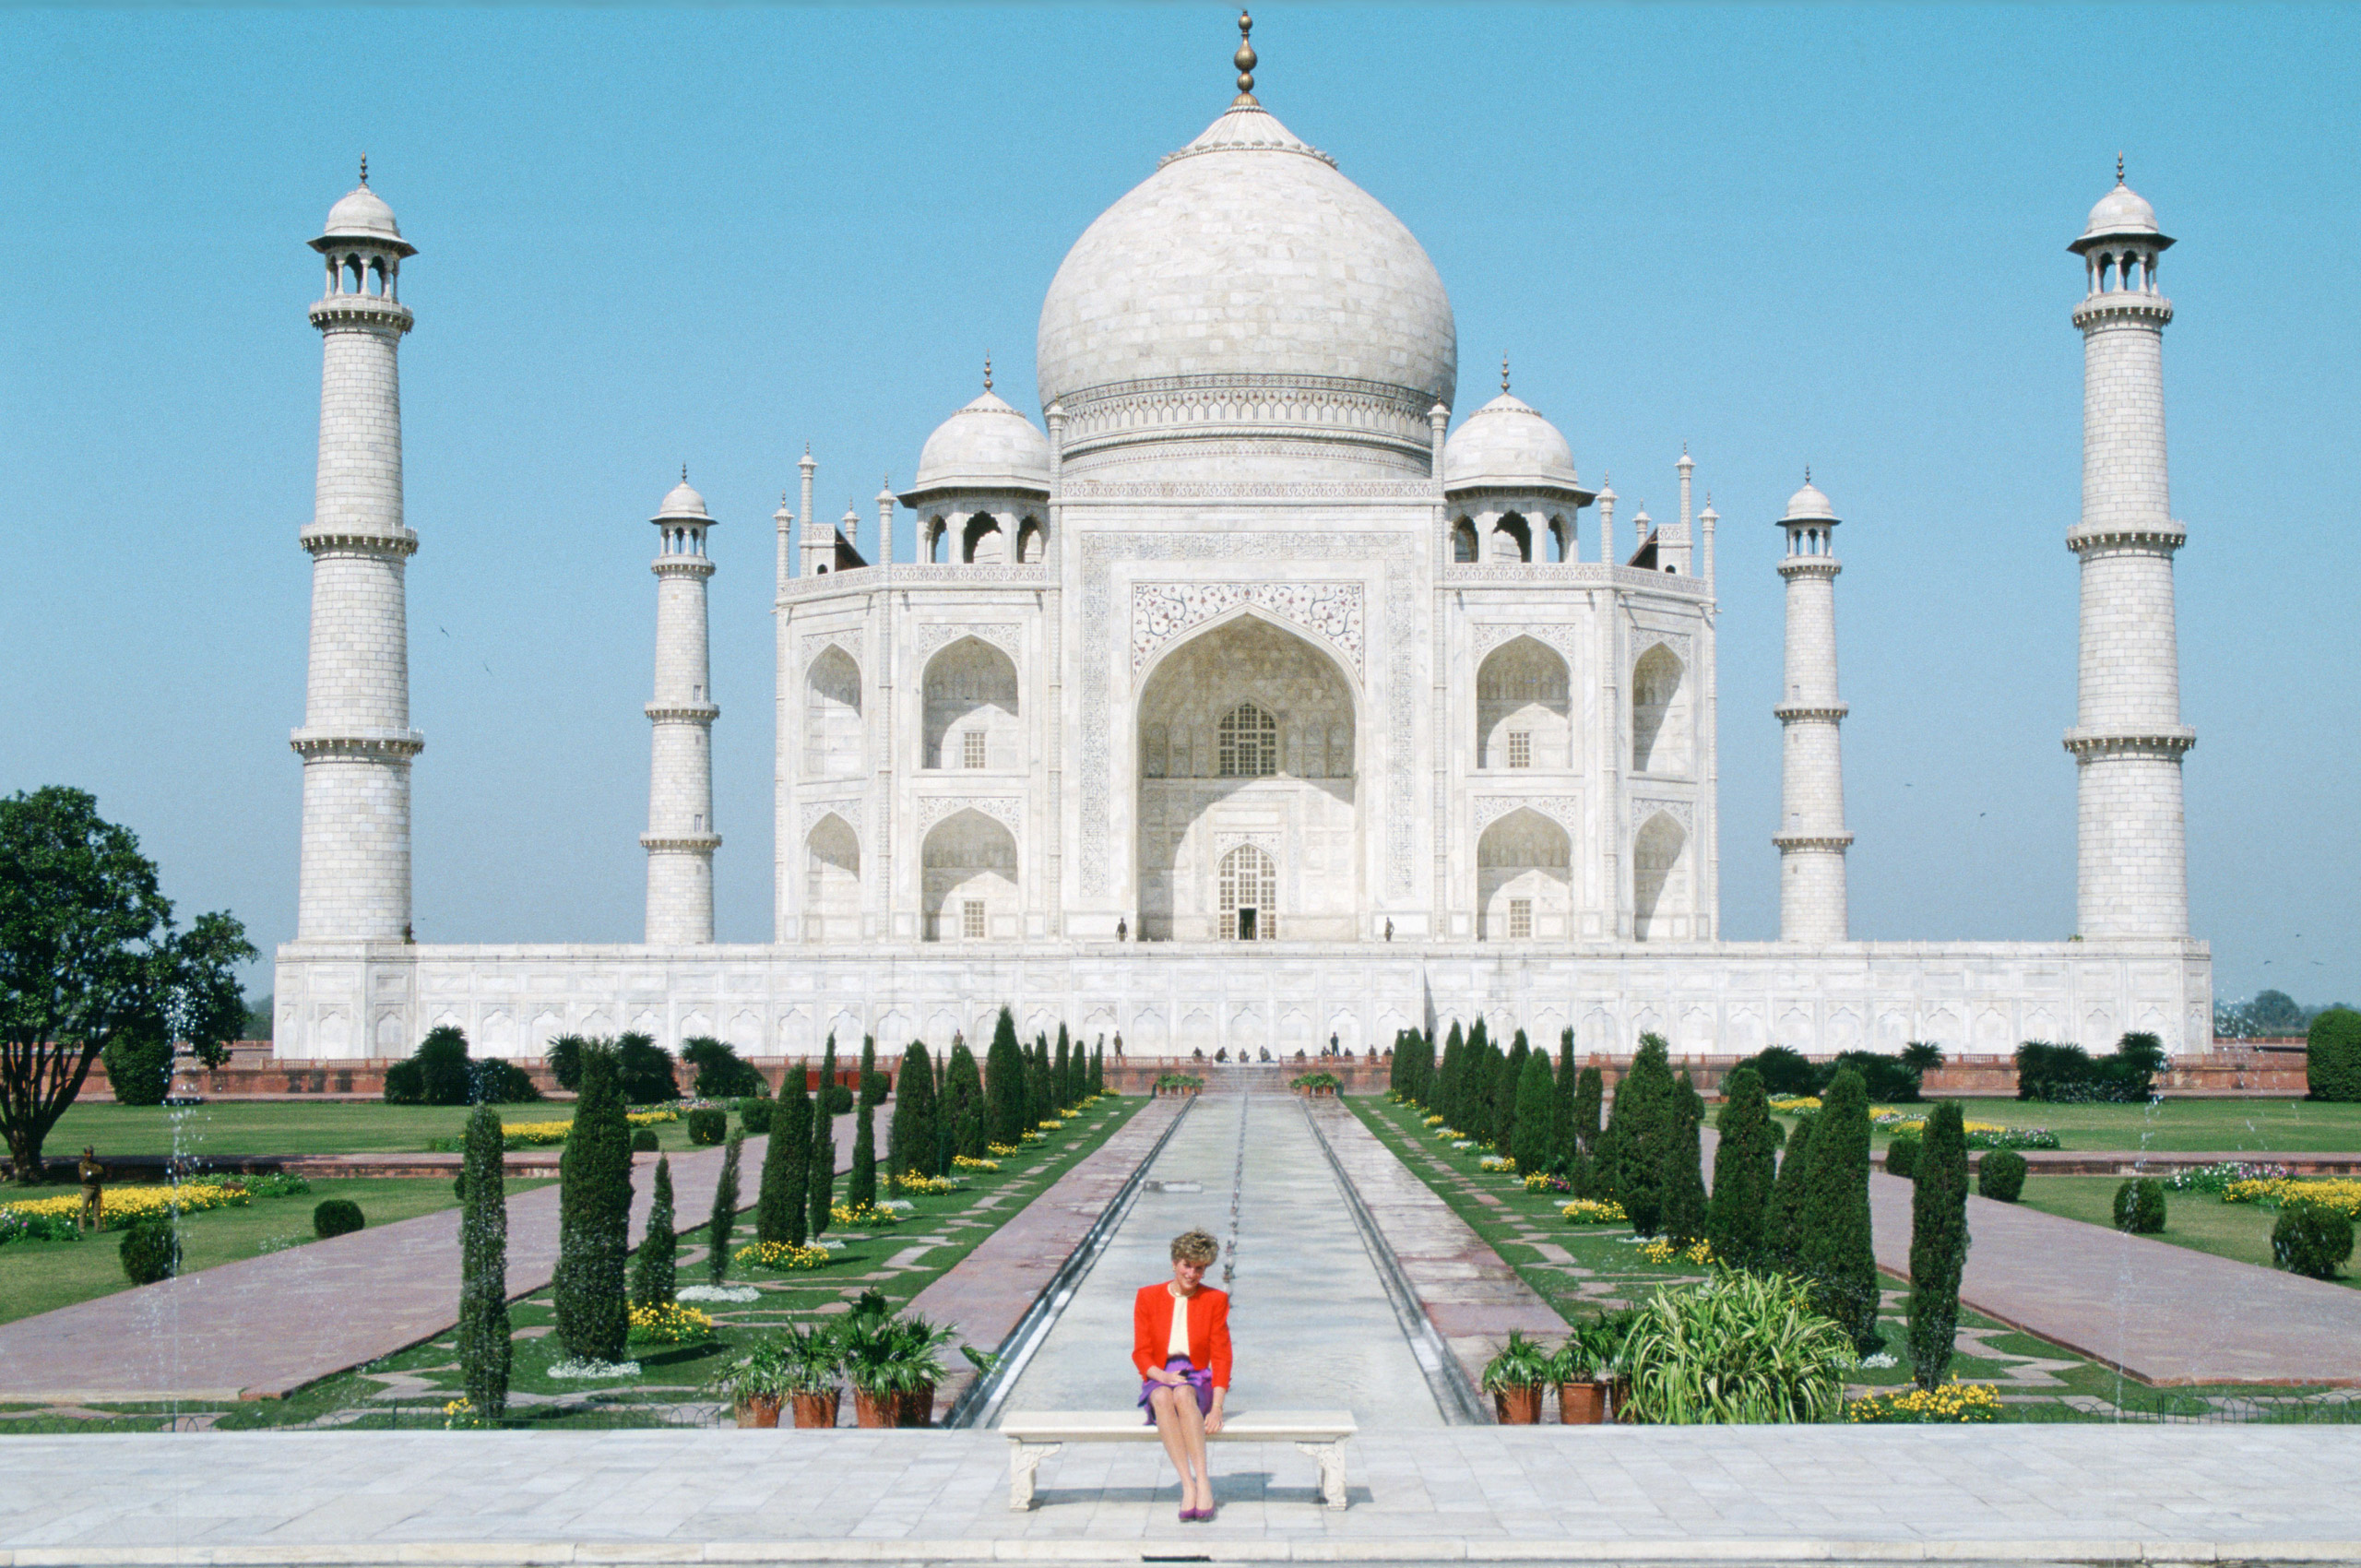 Diana Princess of Wales sits in front of the Taj Mahal during a visit to India, Feb. 11, 1992.